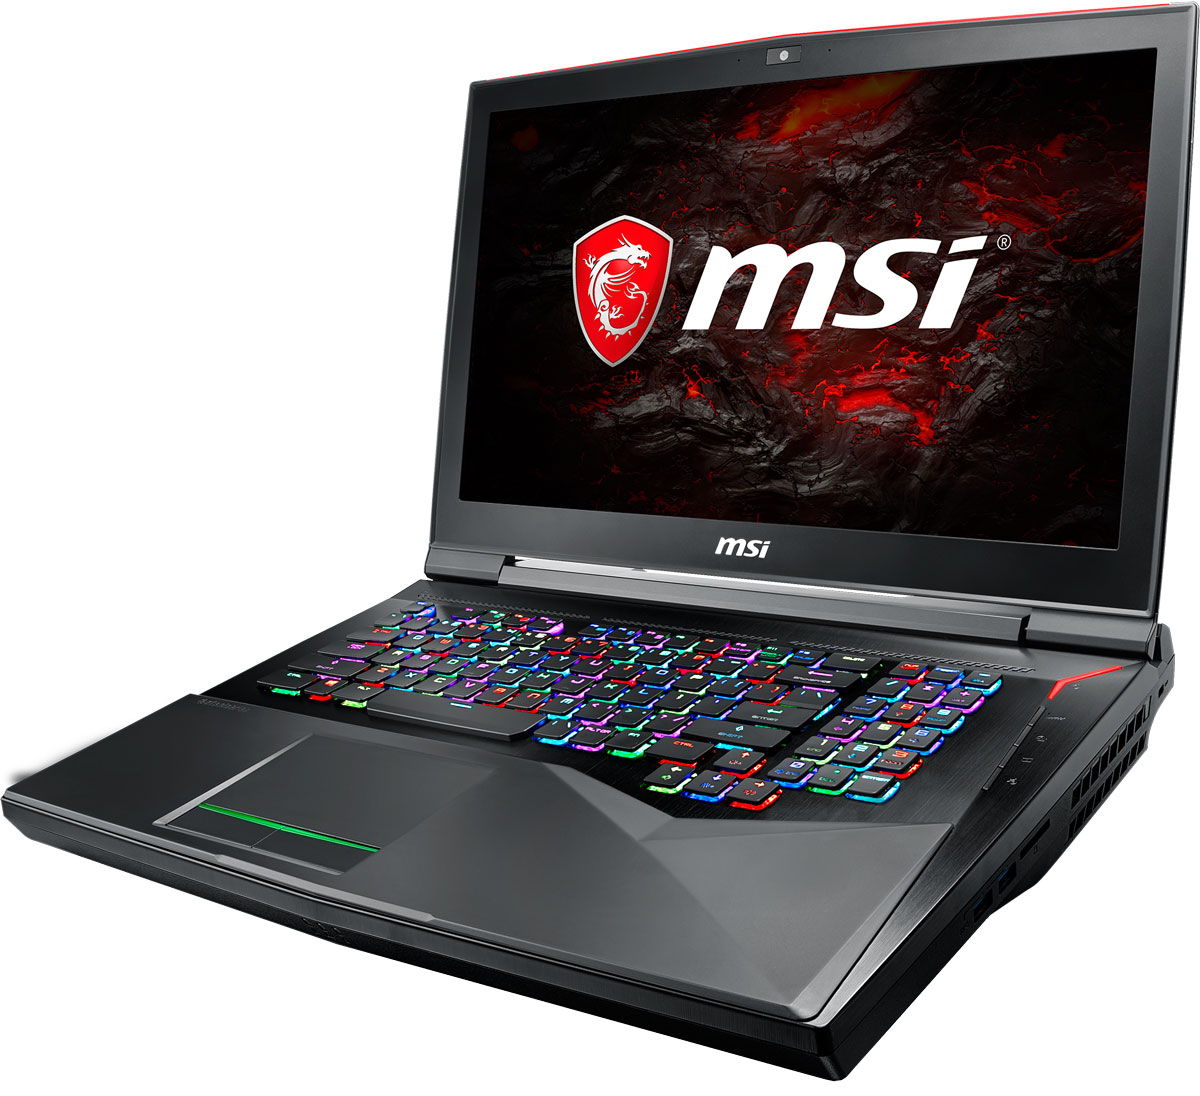 17.3 Игровой ноутбук MSI GT75 Titan 8RG 9S7-17A311-052, черный ноутбук msi gt83 8rg 006ru titan intel core i7 8850h 2600 mhz 18 4 1920х1080 32768mb 512gb hdd blu ray nvidia geforce gtx 1070 х 2 wifi windows 10 home